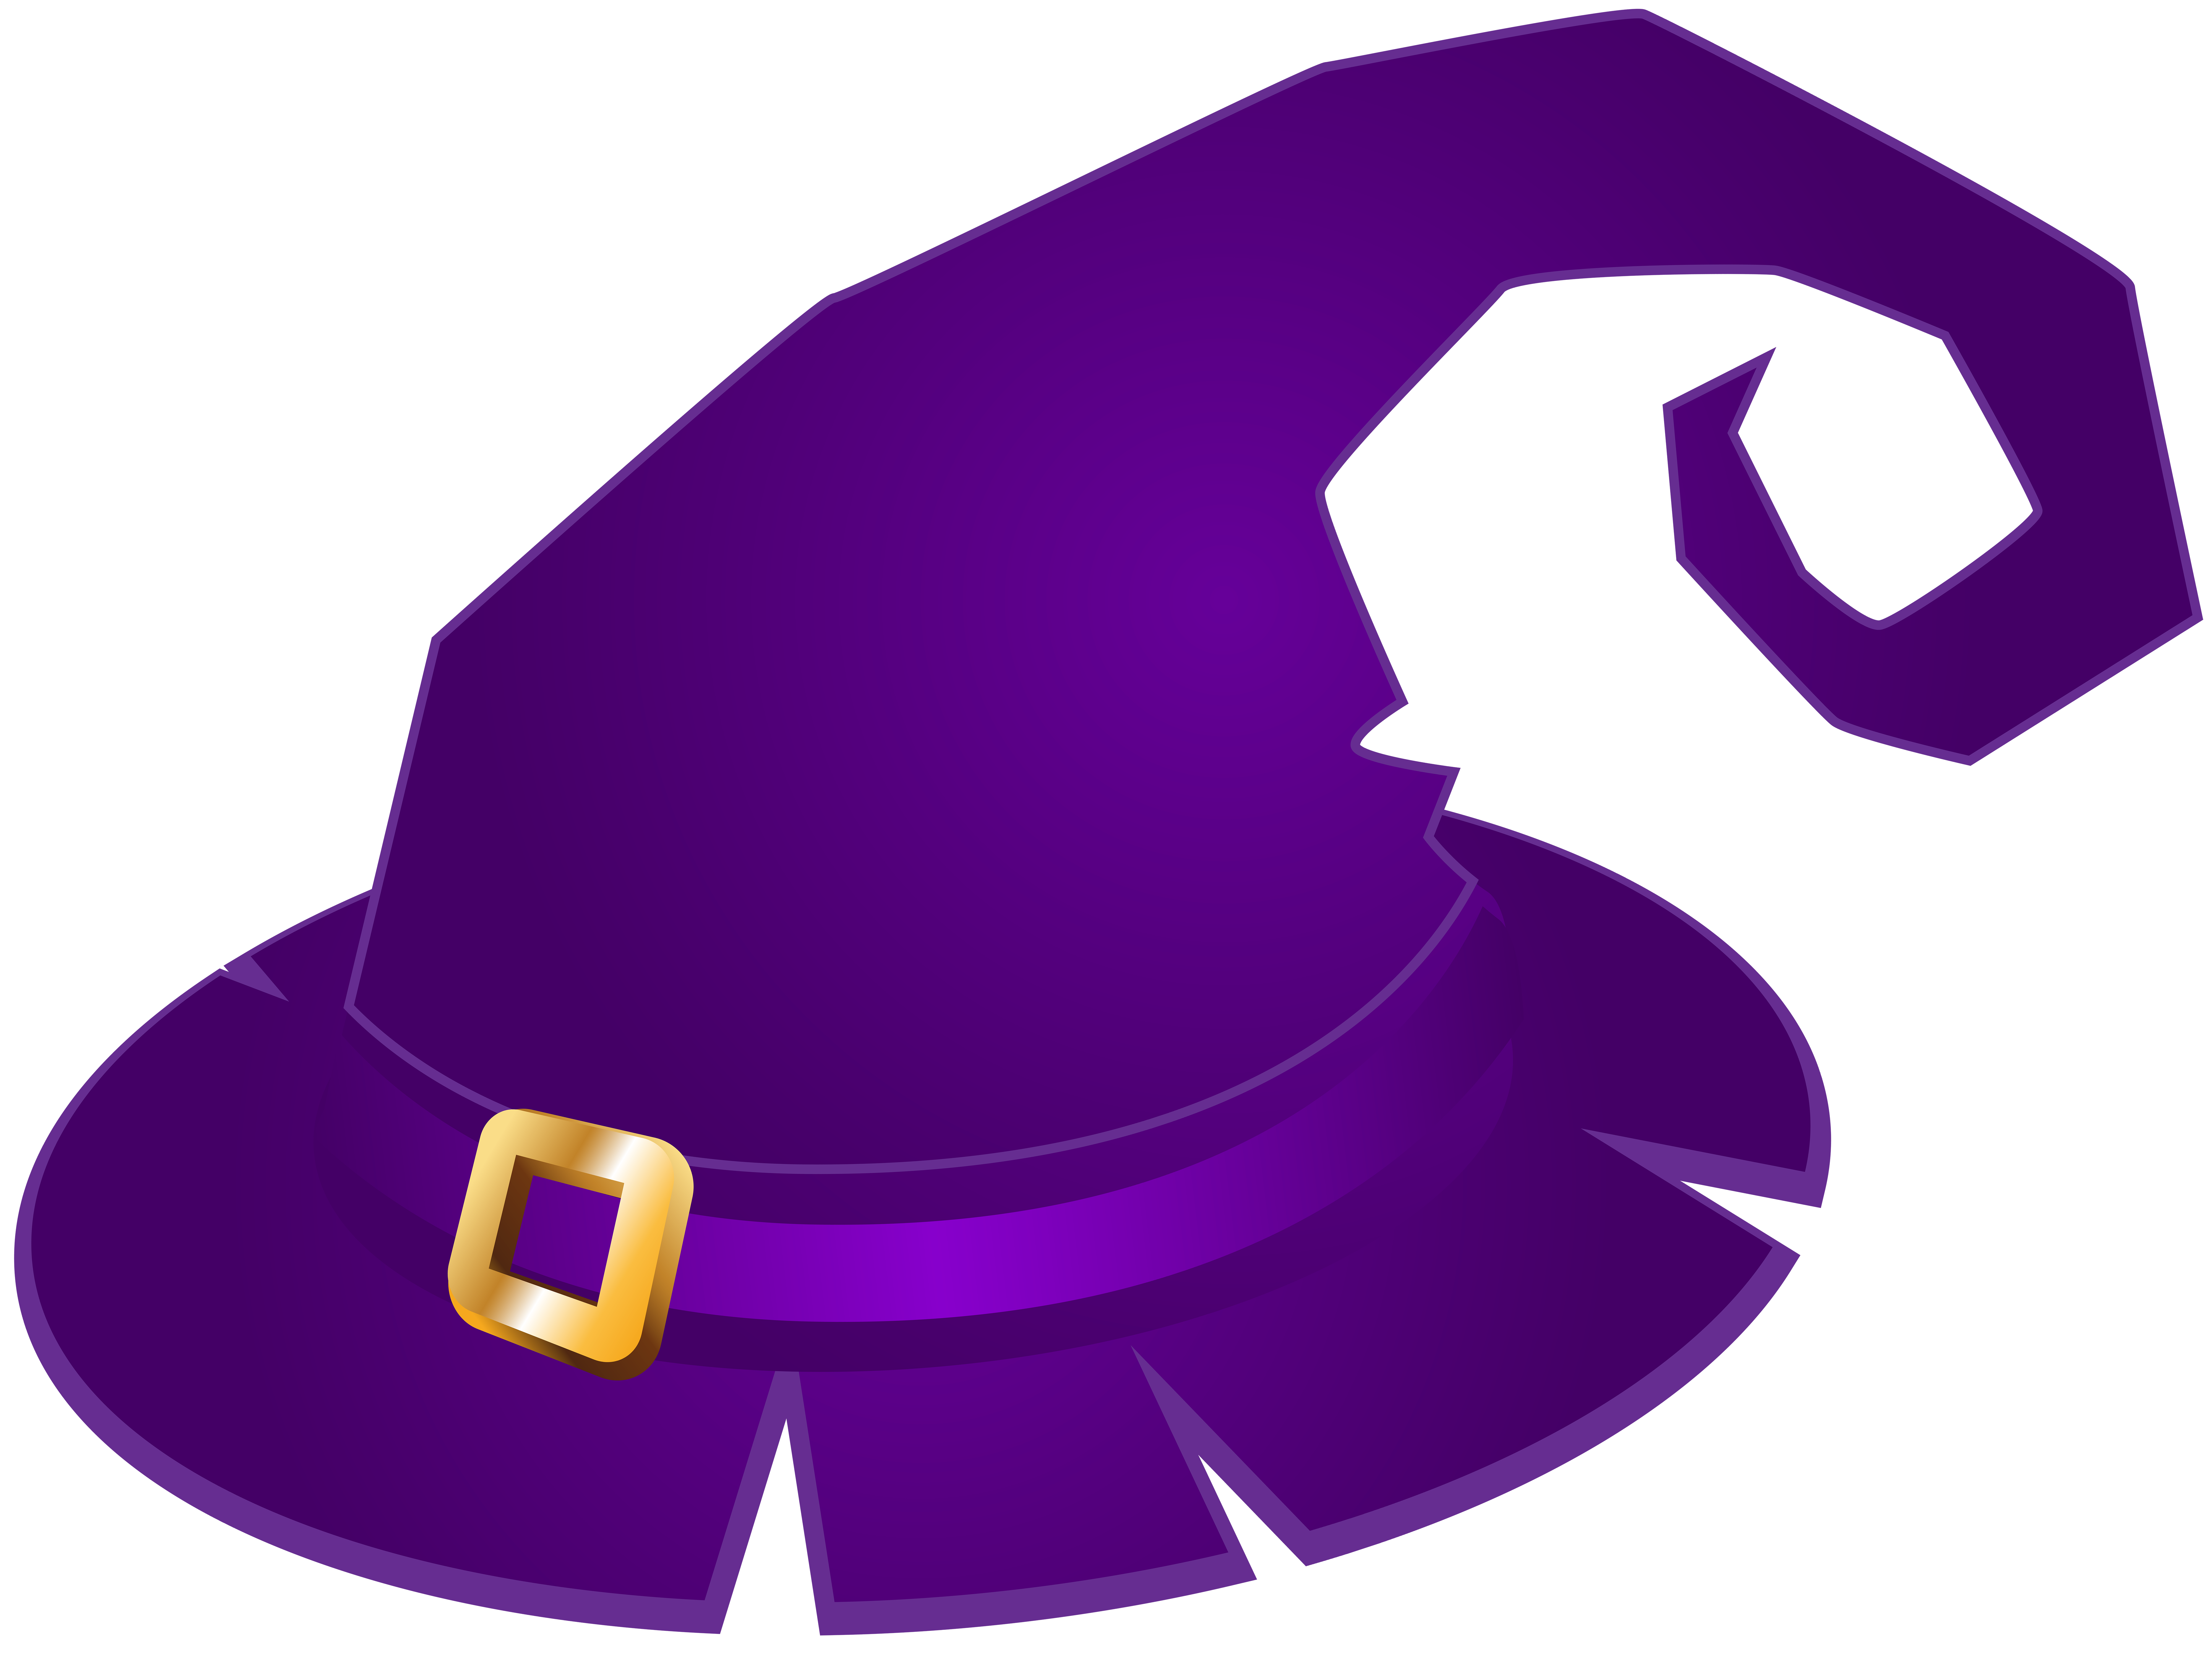 Halloween witch hat clipart clip art transparent Violet Clipart Hat Free collection | Download and share Violet ... clip art transparent